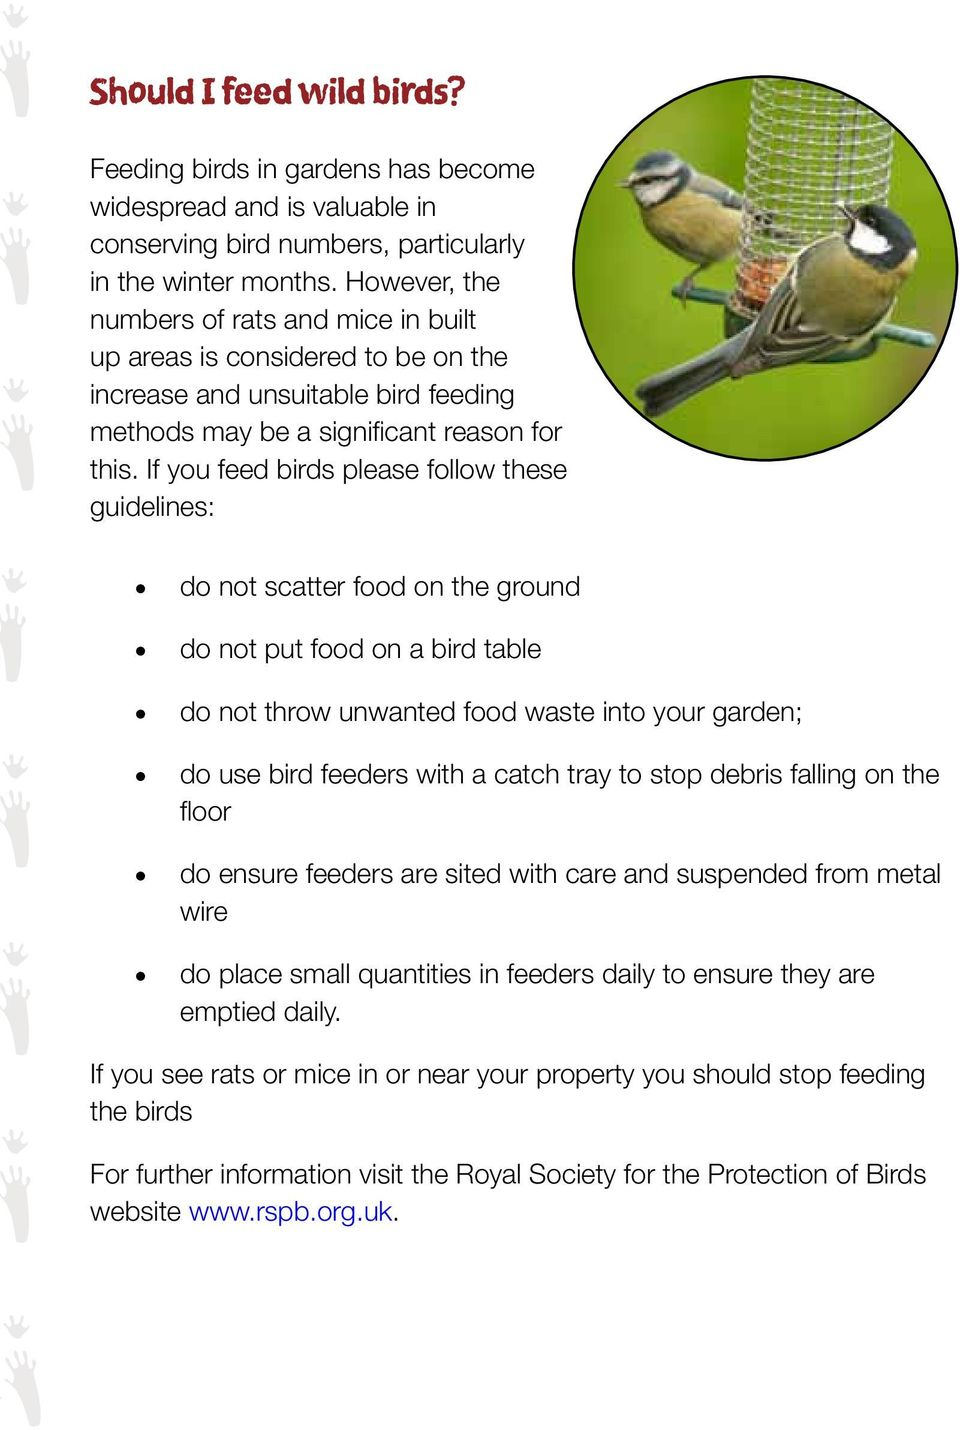 If you feed birds please follow these guidelines: do not scatter food on the ground do not put food on a bird table do not throw unwanted food waste into your garden; do use bird feeders with a catch